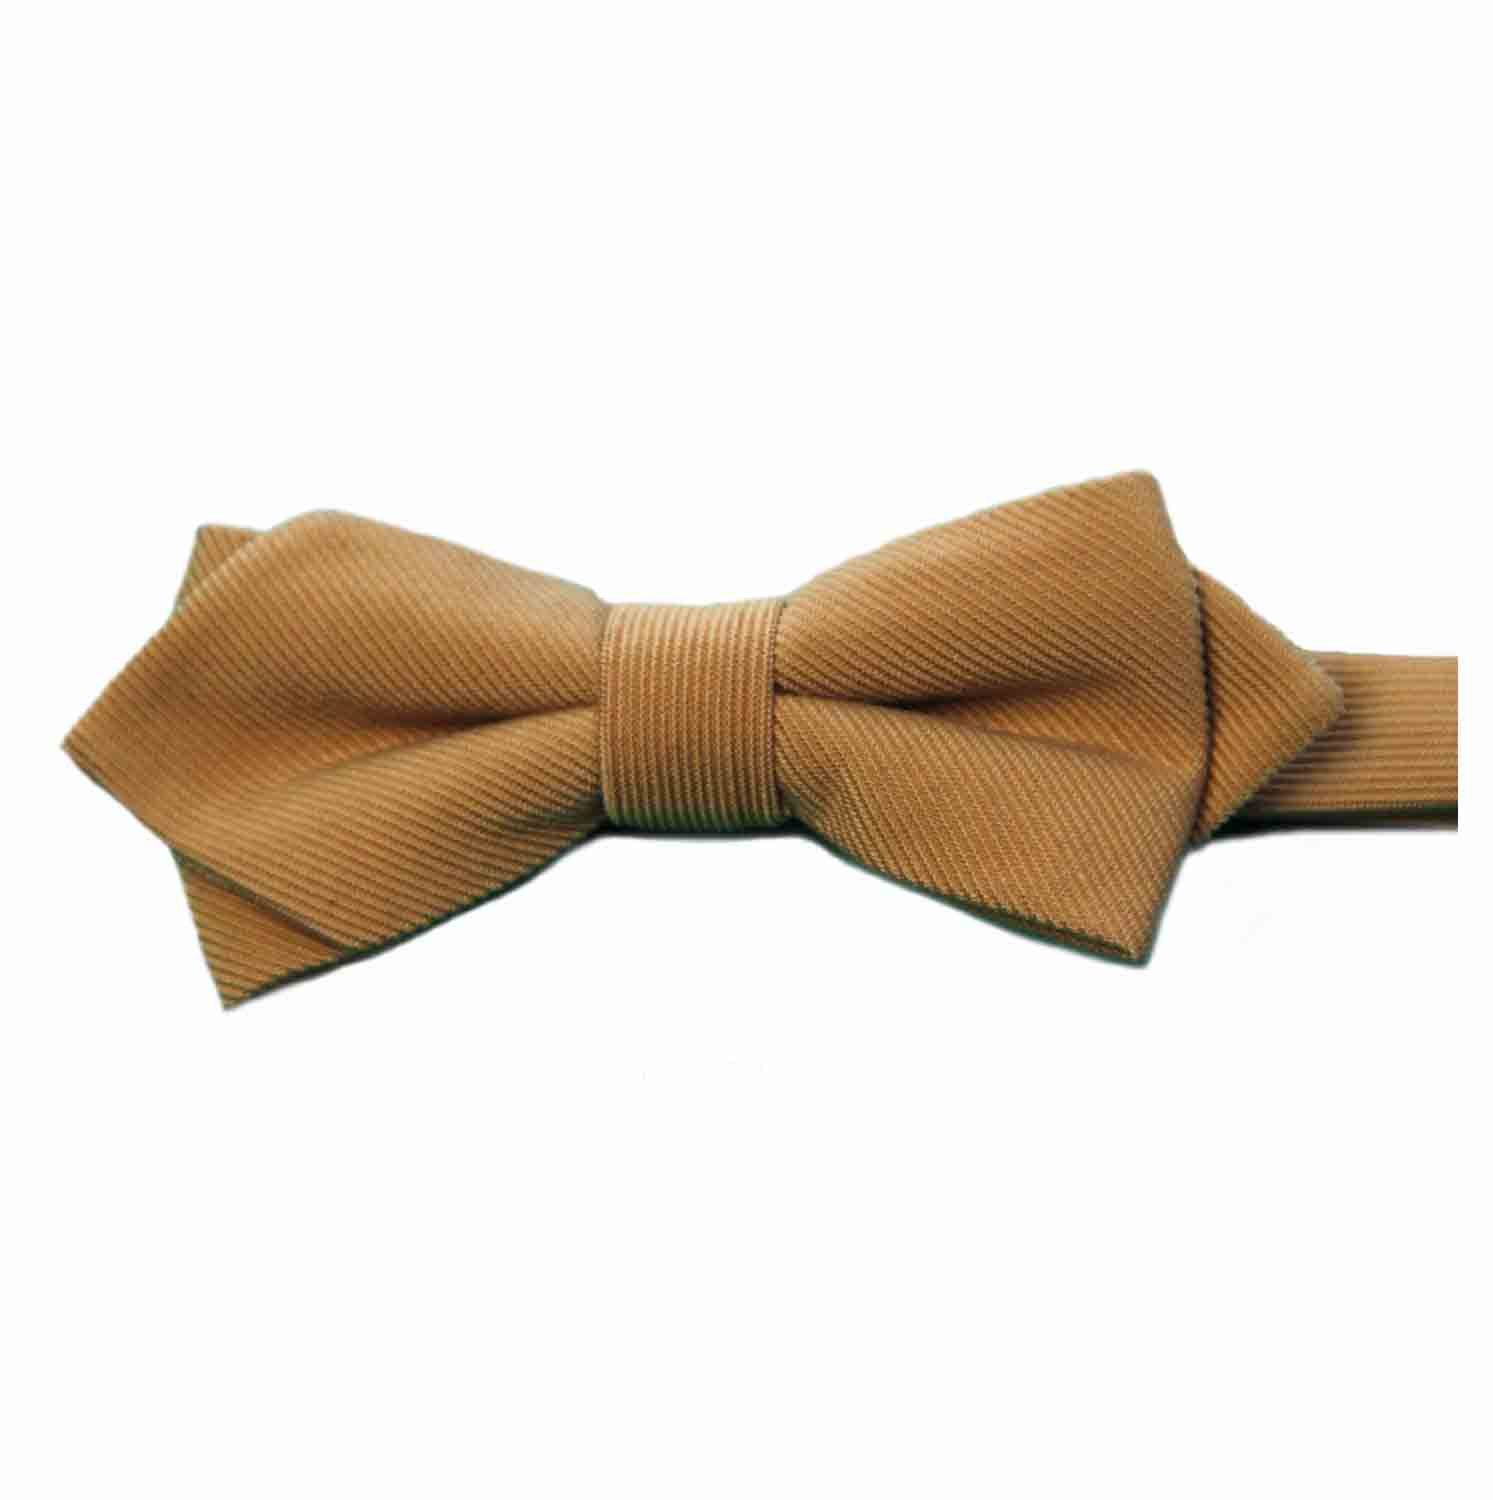 Tommy Hilfiger Bow Tie Camel Pre-Tied One Size Men's